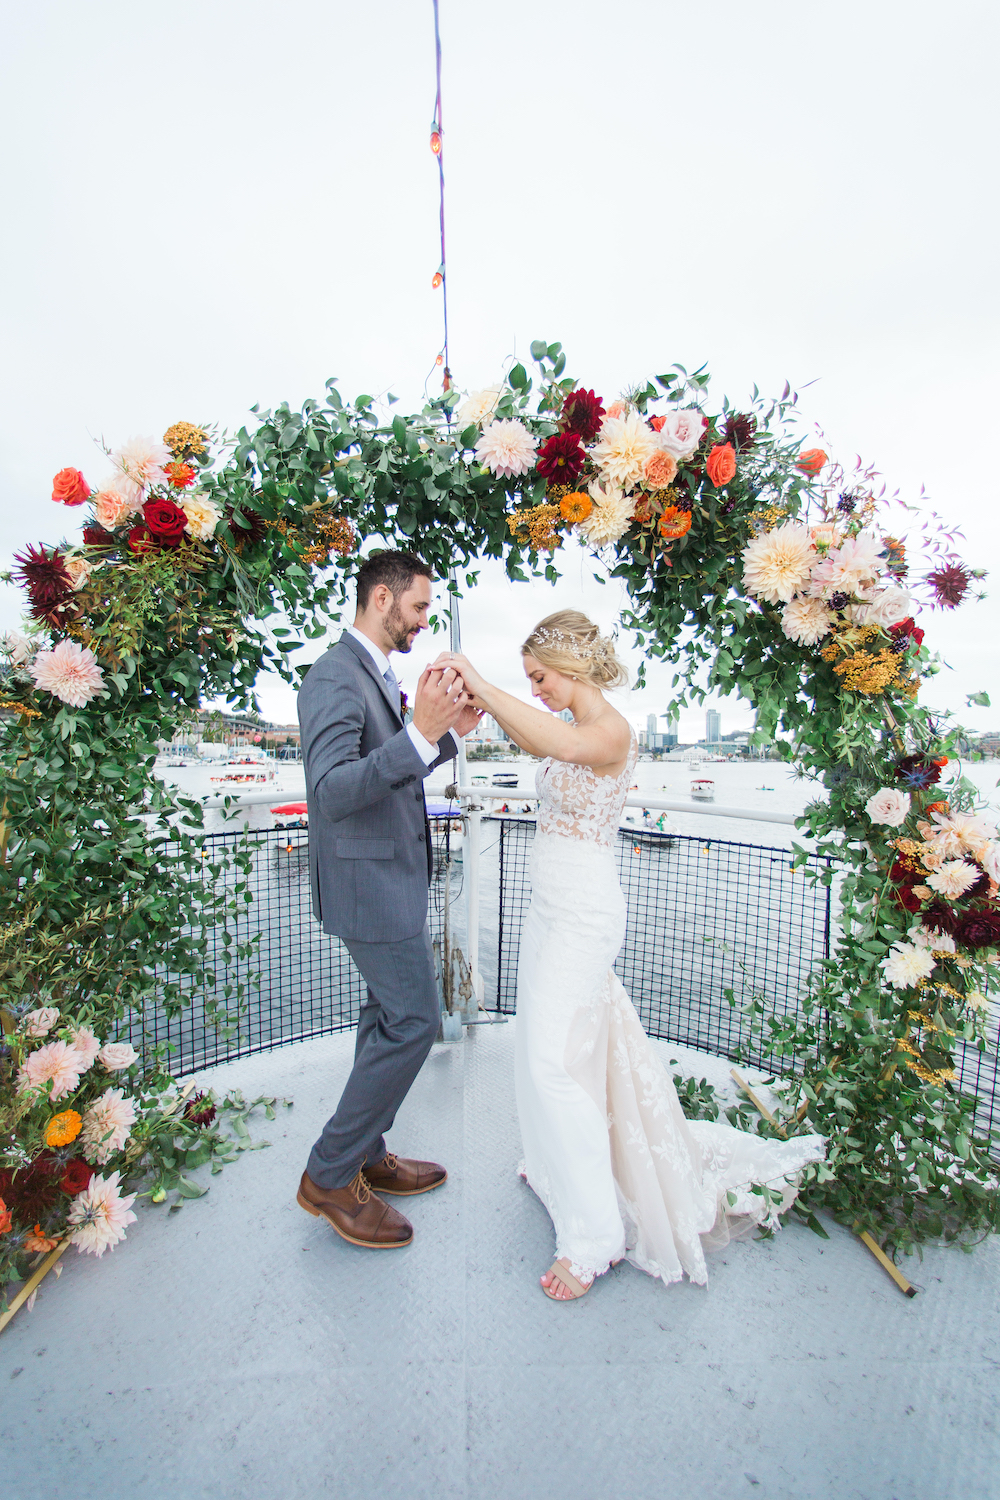 Bride and groom dancing under their wedding arch on a boat in Lake Union Seattle - A Safe Pandemic Wedding